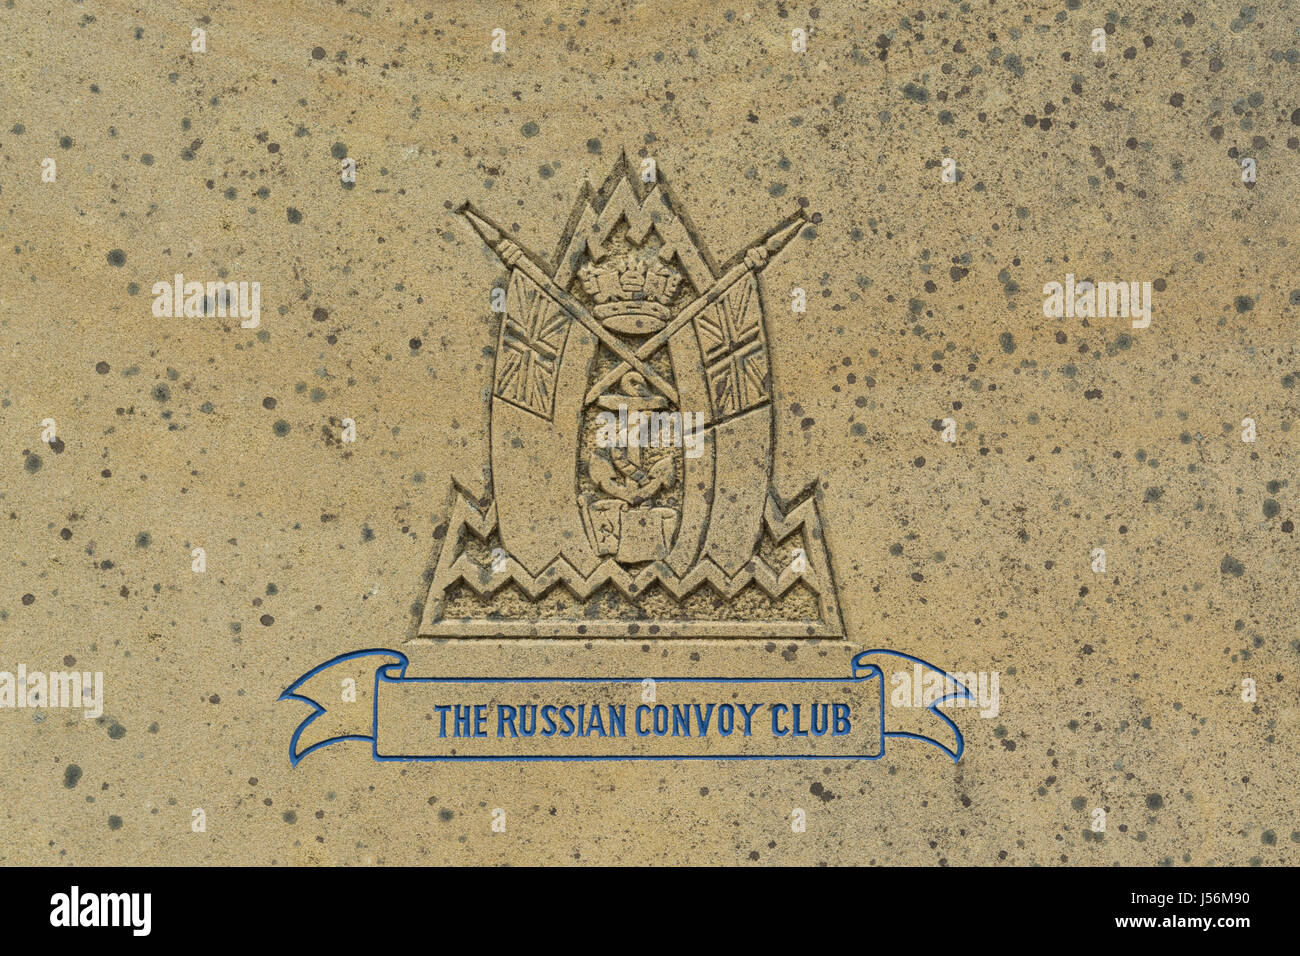 Russian Convoy Club Loch Ewe War Memorial (detail)  to the crews lost on Russian Convoys, Rubha nan Sasan, Cove, - Stock Image